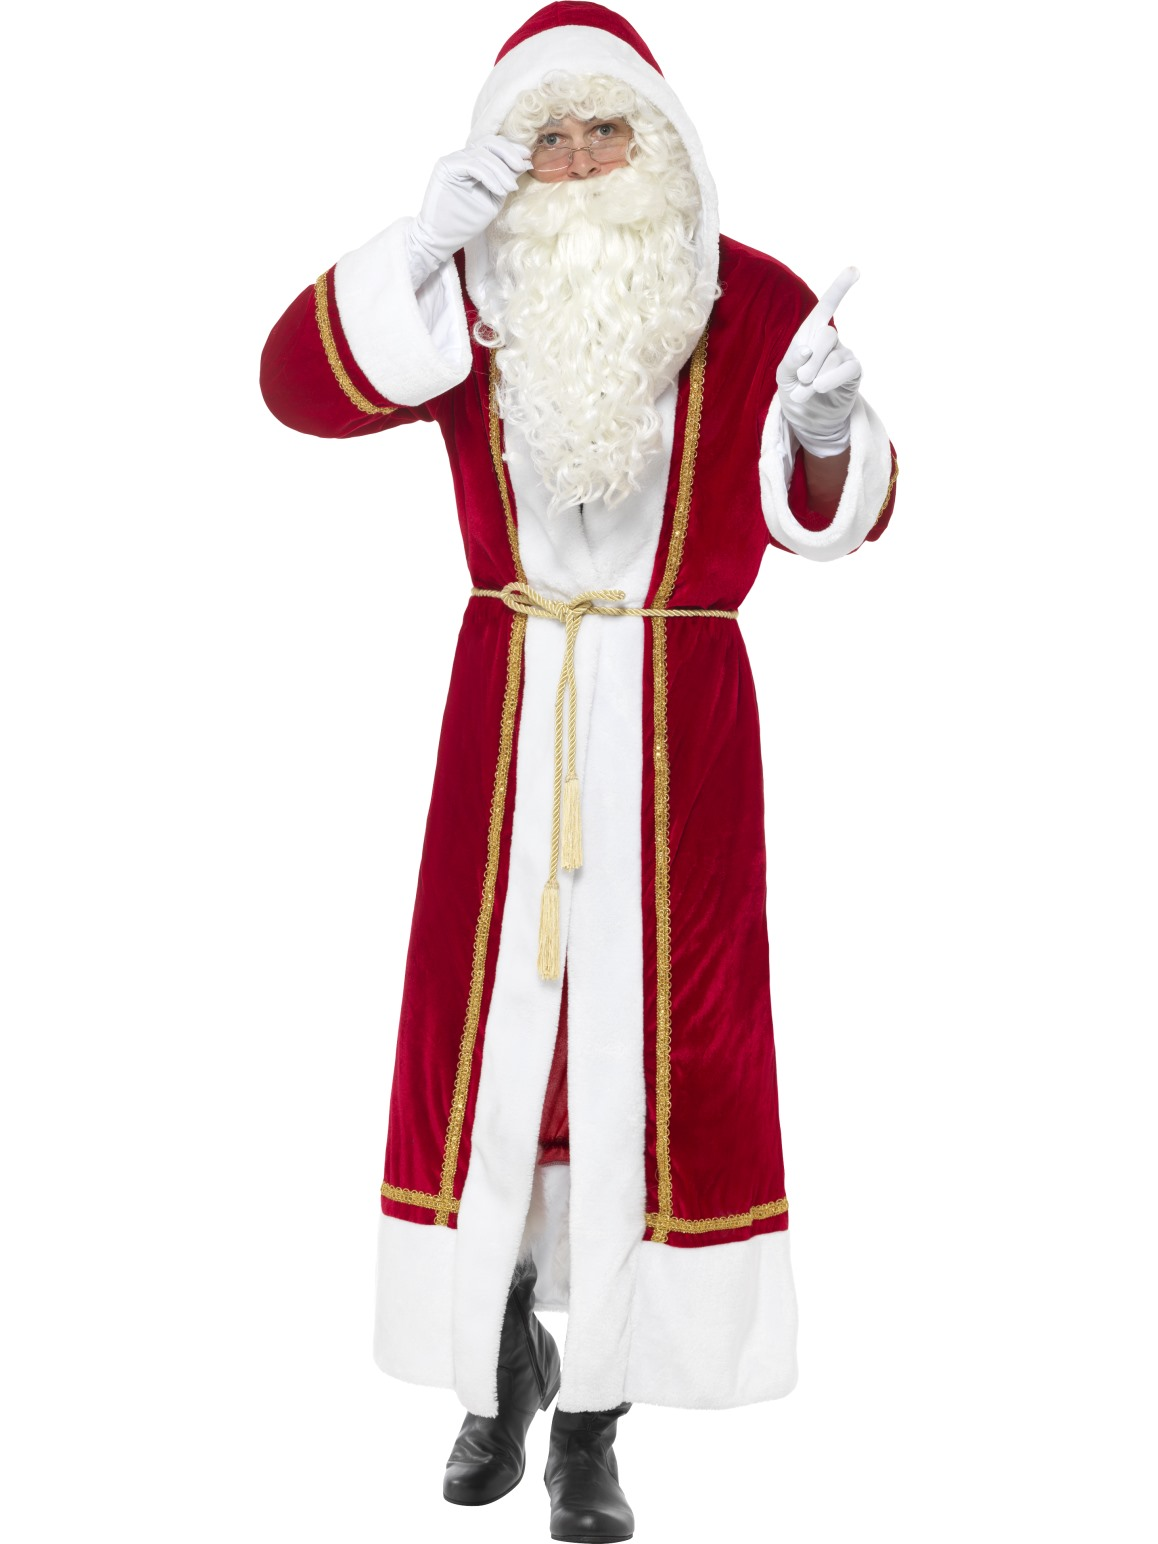 Image Is Loading Christmas Santa Costume Deluxe Professional Santa  Suits Fancy